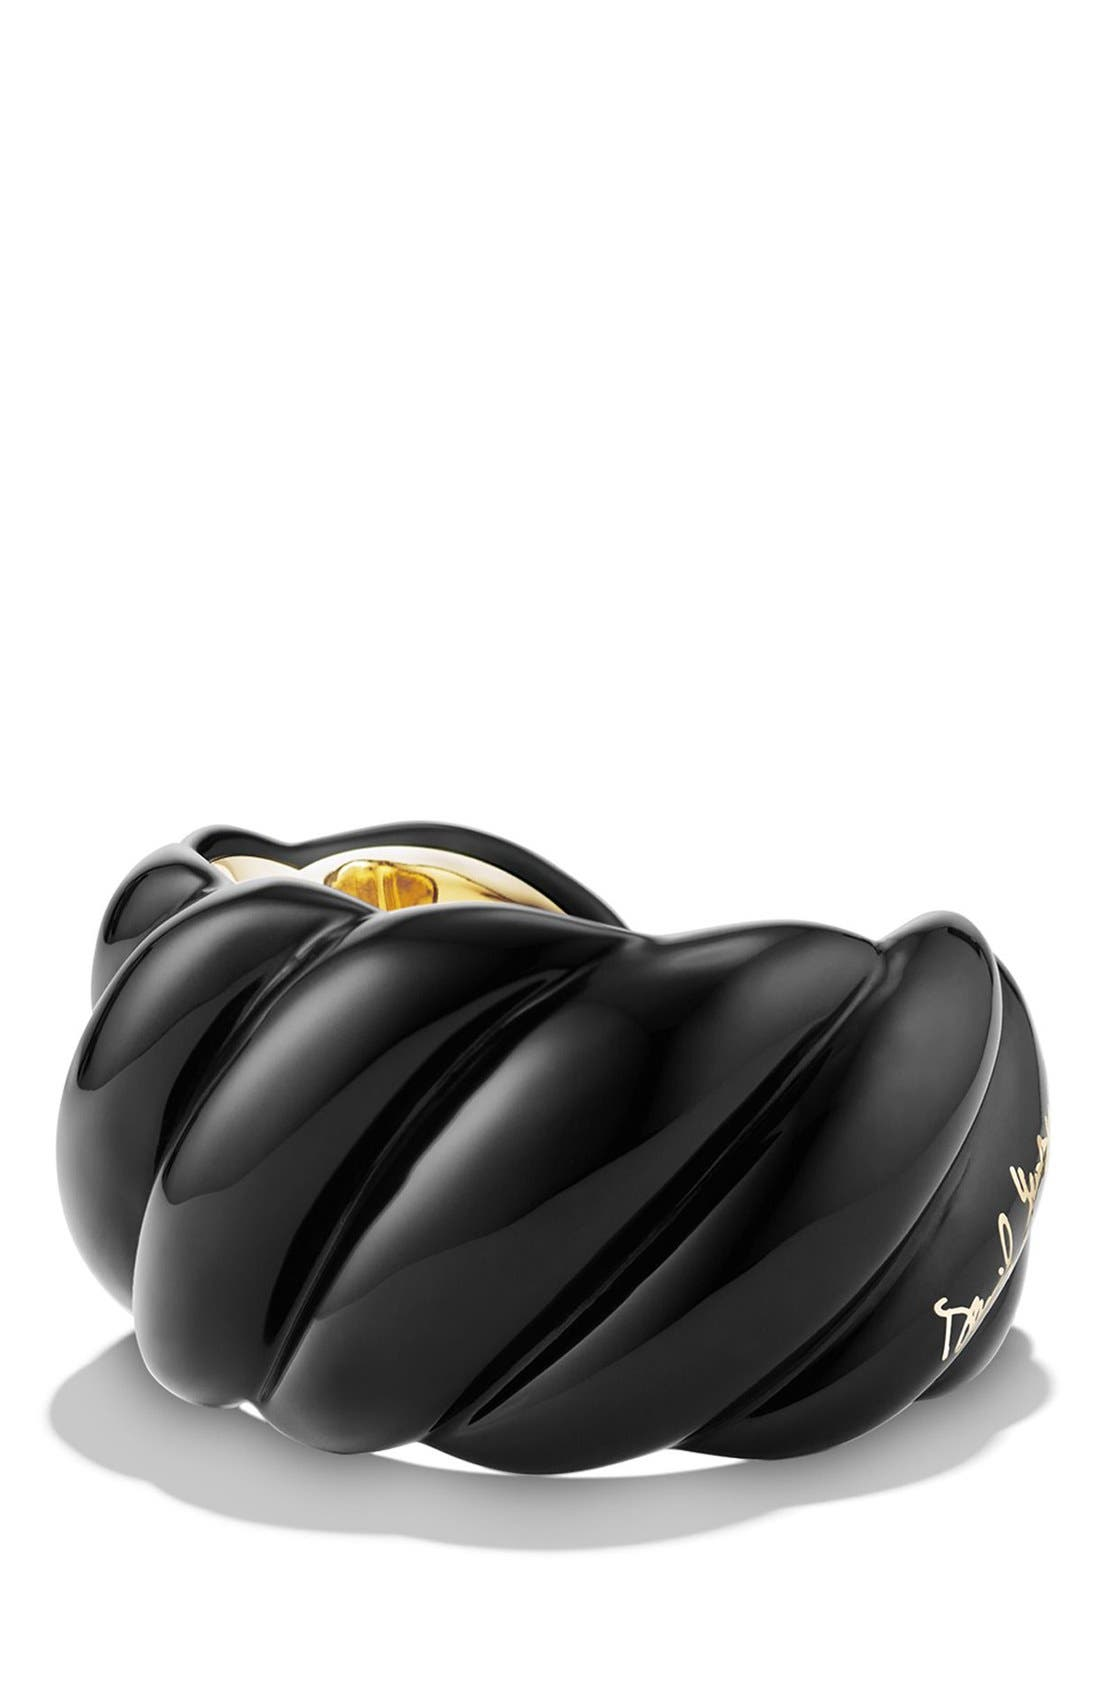 'Sculpted Cable' Resin Cuff Bracelet with 18k Gold,                         Main,                         color, YELLOW GOLD/ BLACK